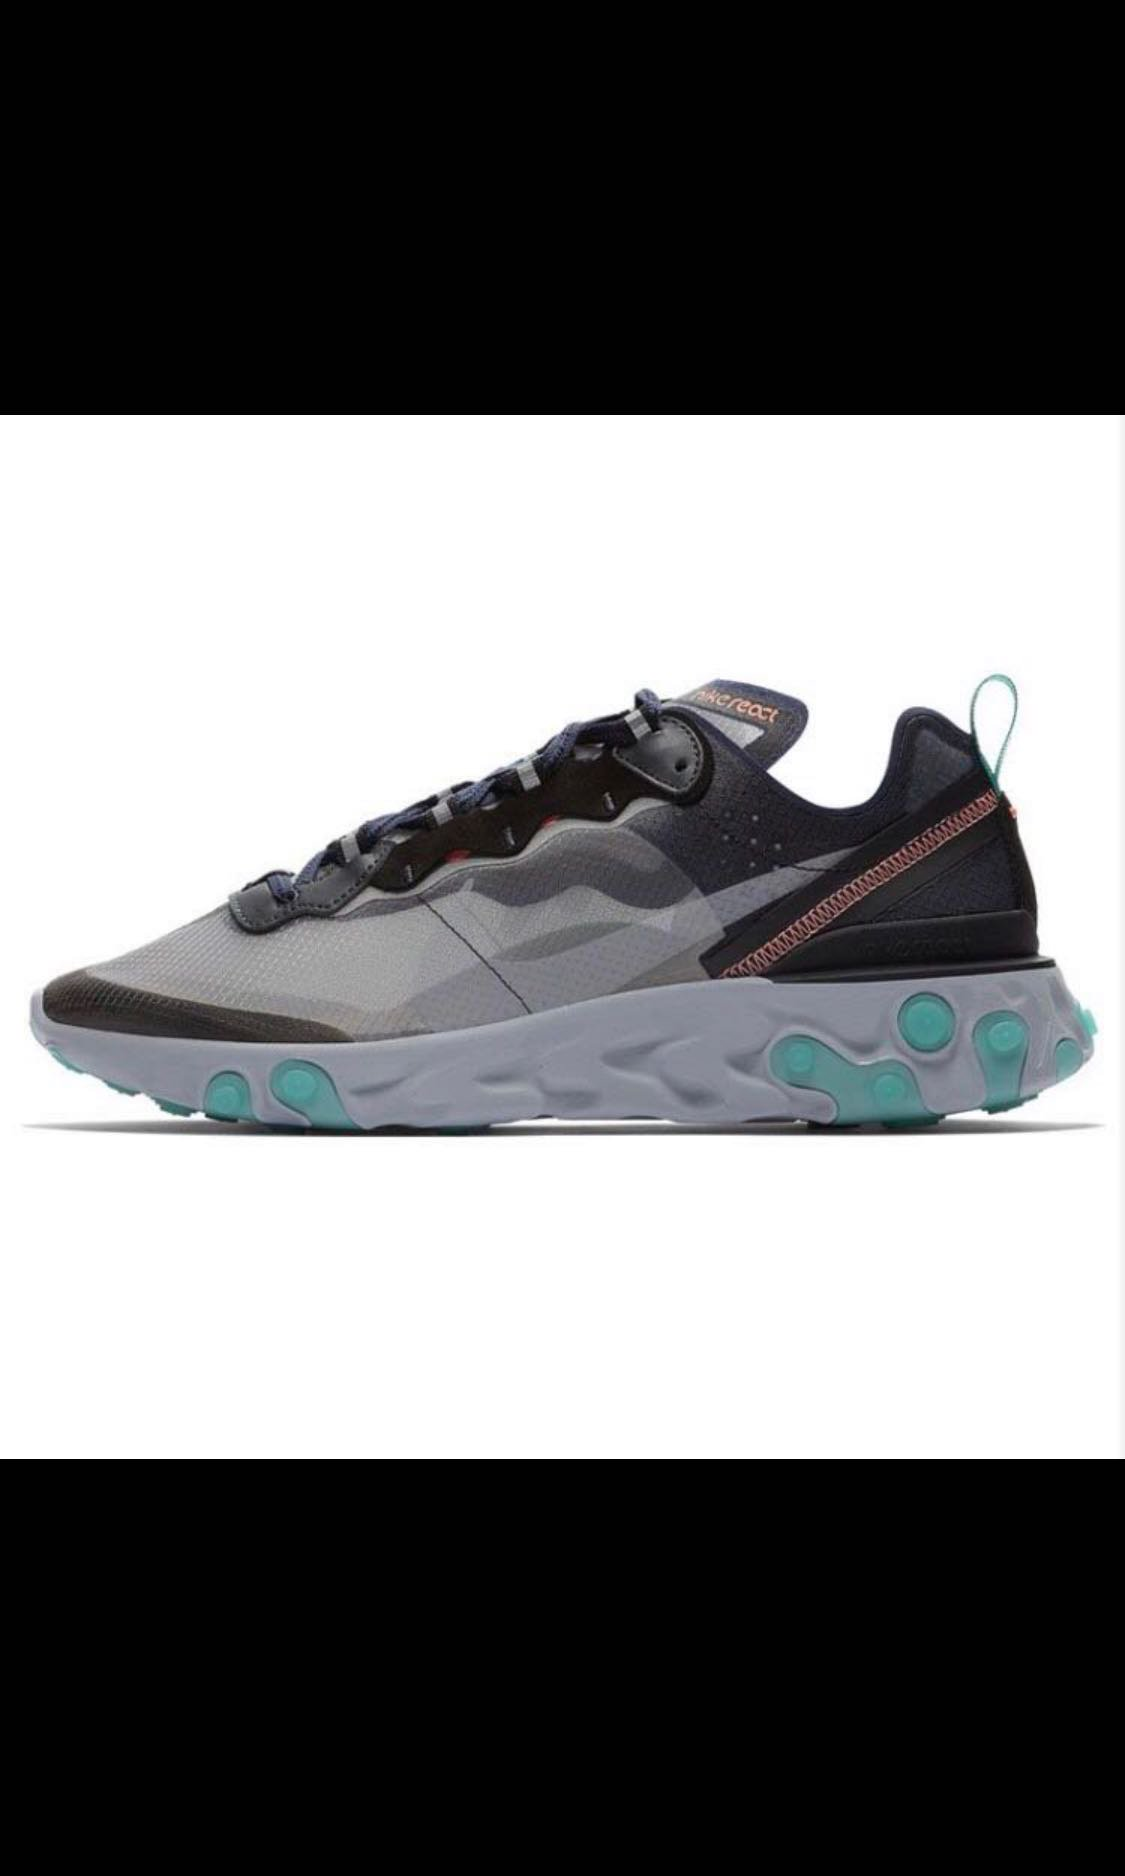 promo code 1579c 32a10 Nike React Element 87 - Price in Singapore   Outlet.sg